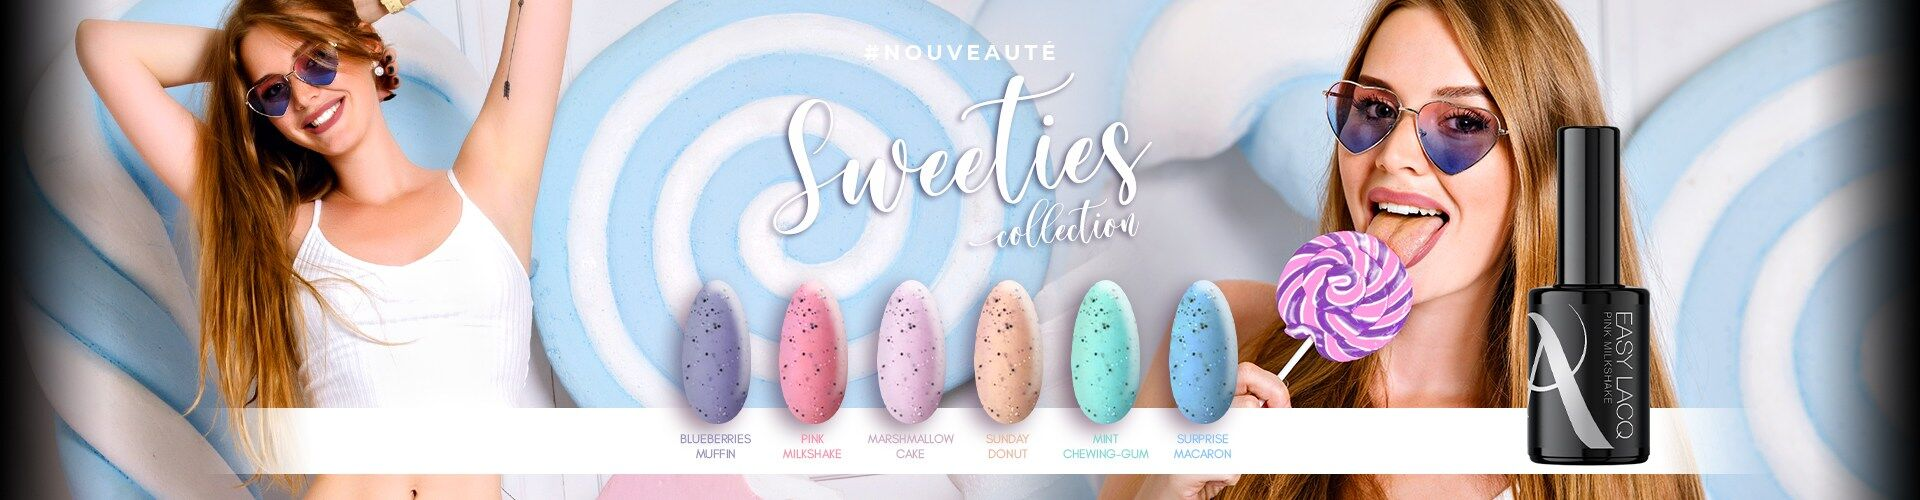 SLIDE 4 - Sweeties Collection